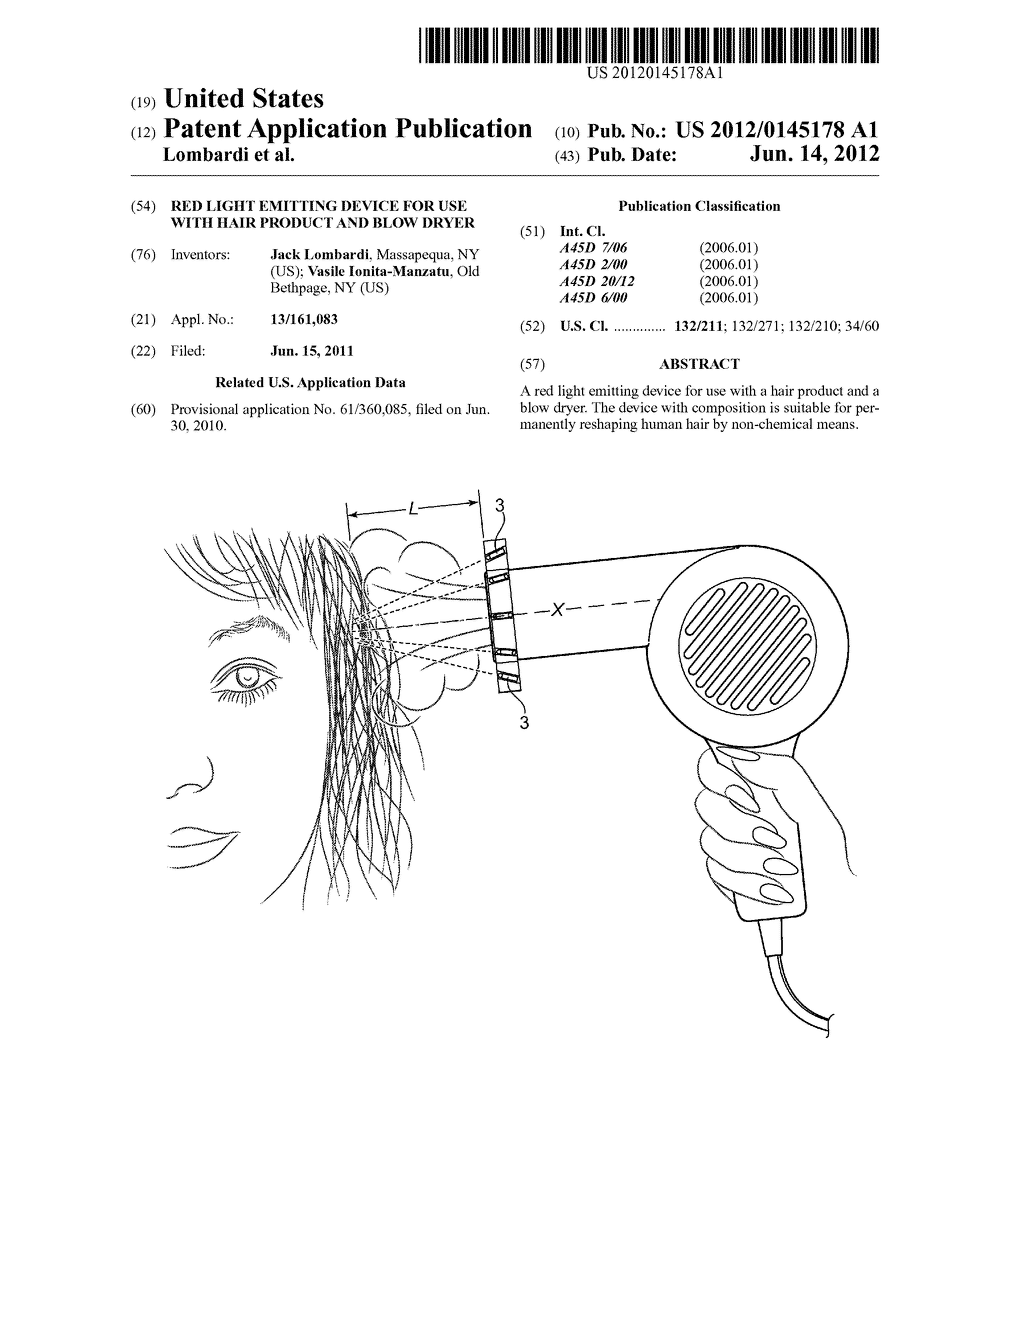 Red Light Emitting Device For Use With Hair Product And Blow Dryer ...